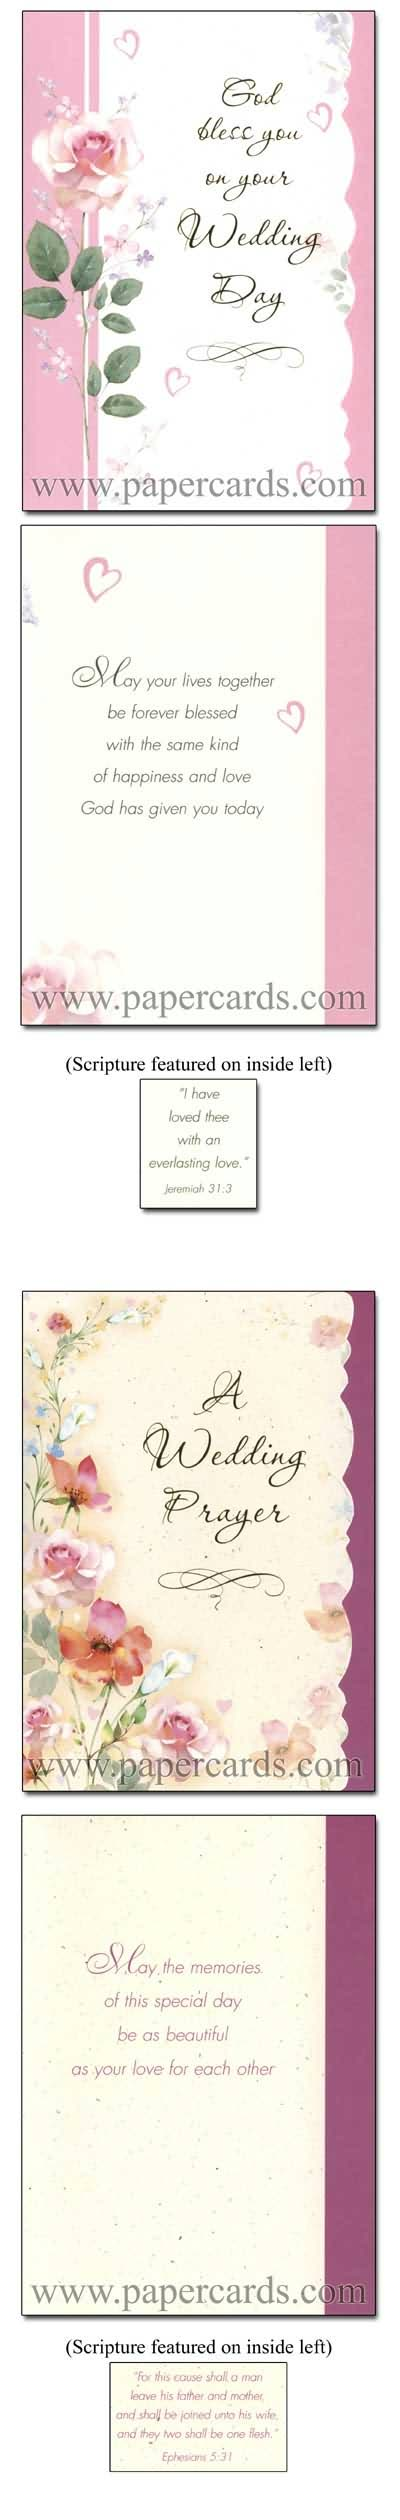 Two Hearts Box Of 12 Assorted Christian Wedding Congratulations